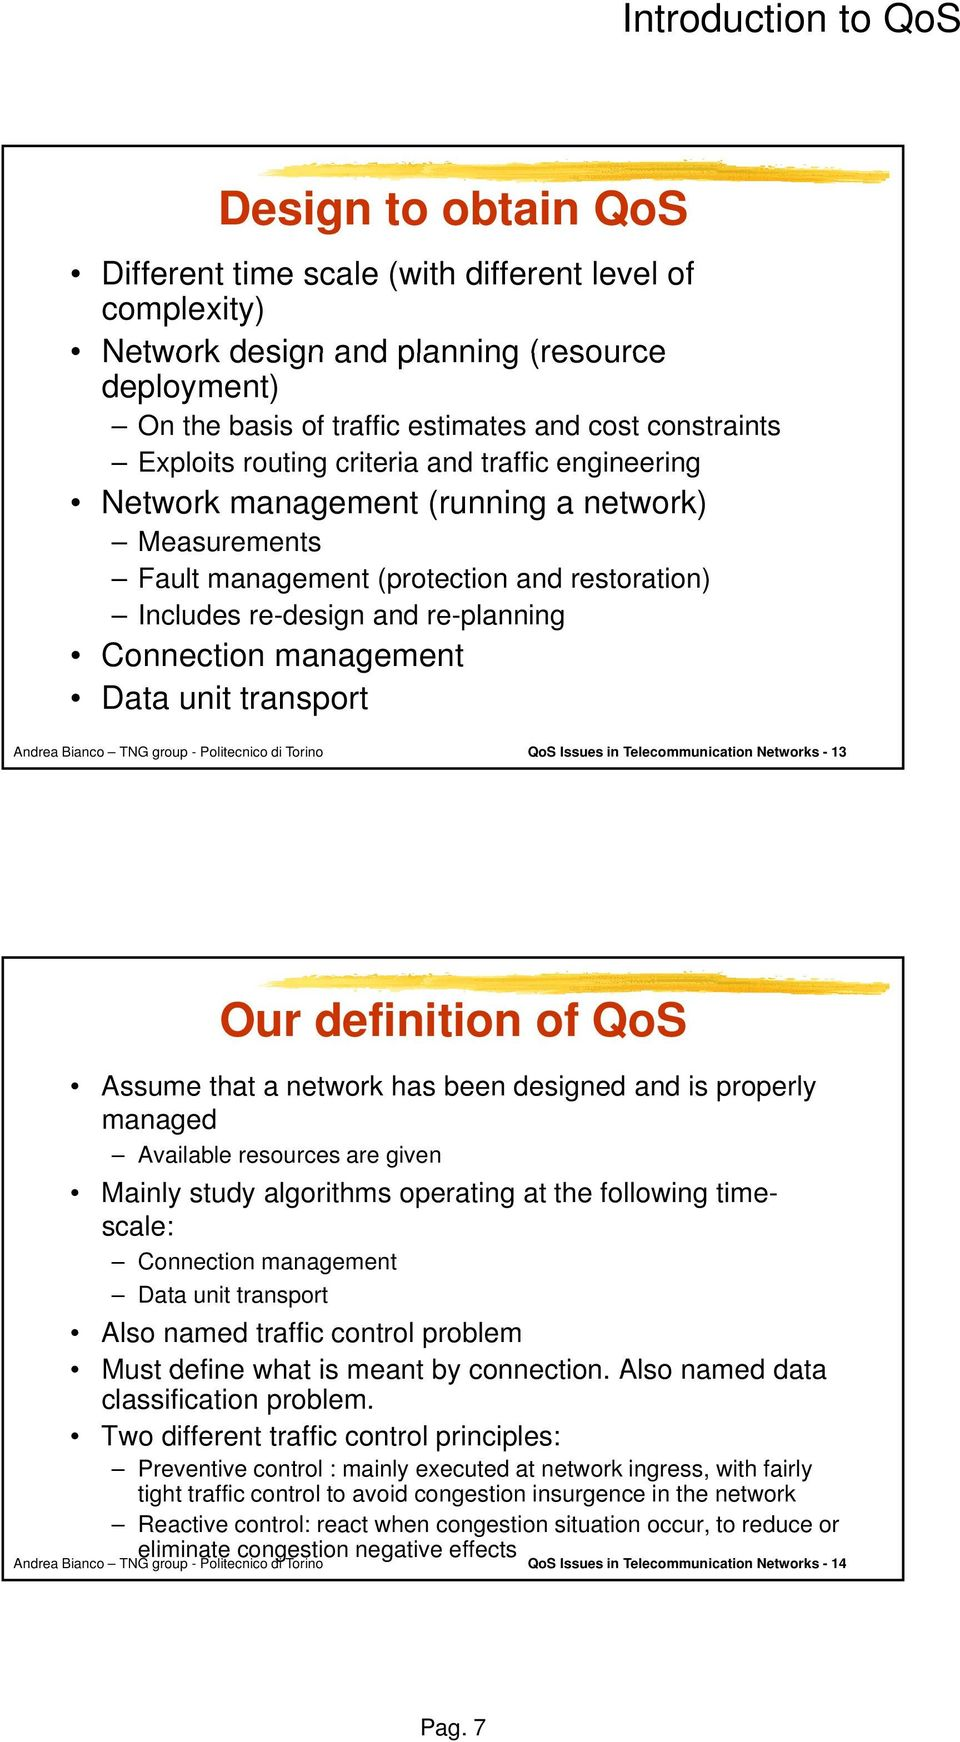 Data unit transport QoS Issues in Telecommunication Networks - 13 Our definition of QoS Assume that a network has been designed and is properly managed Available resources are given Mainly study